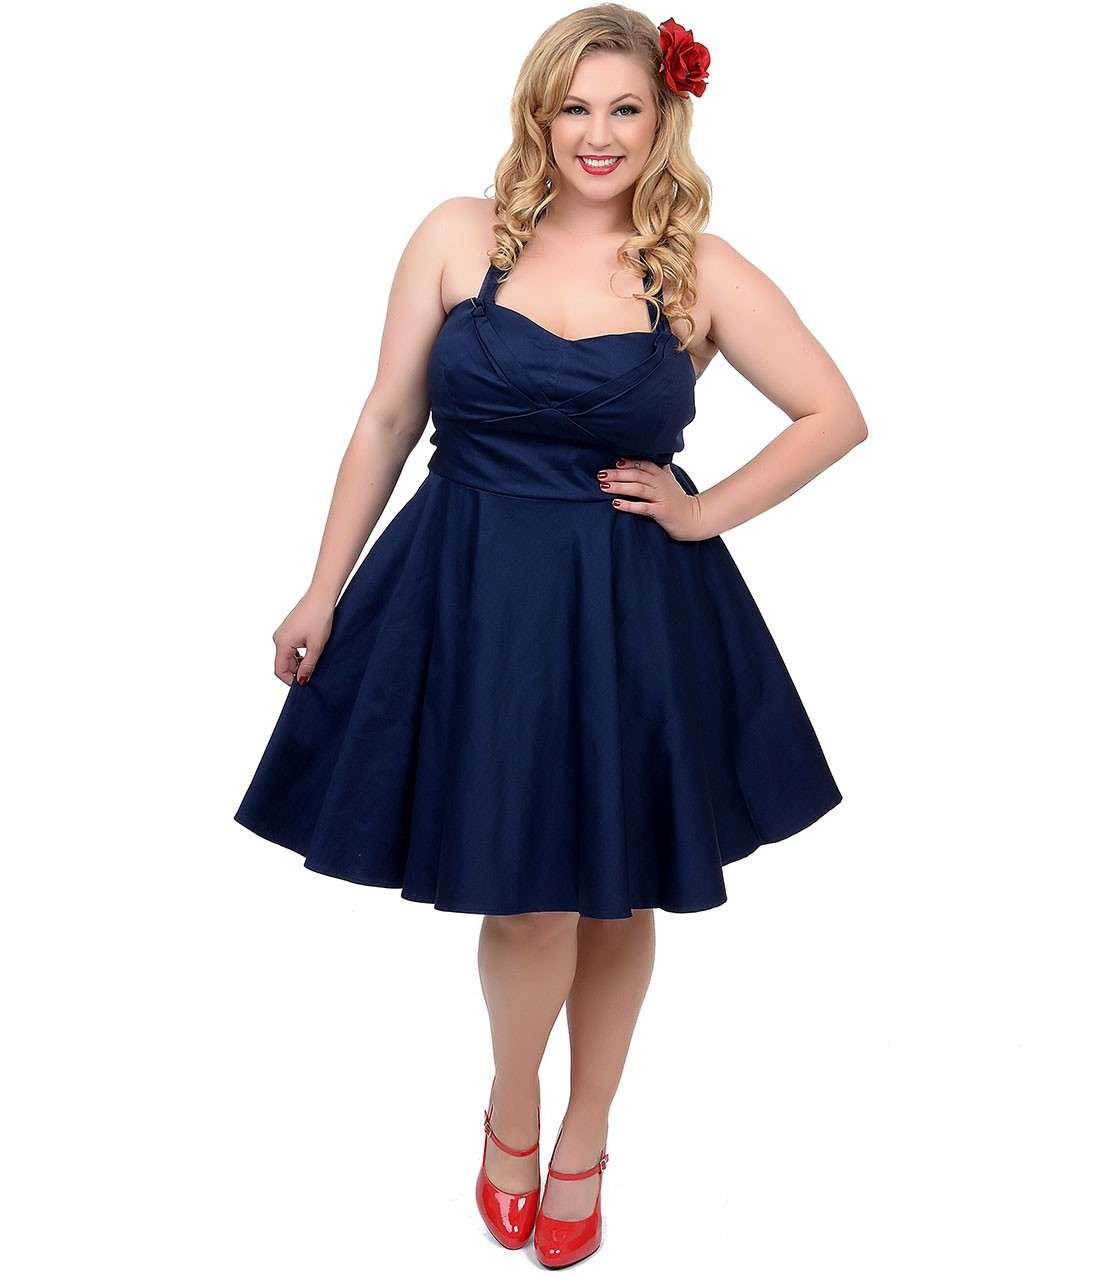 Here Are The Most Practical Fashion Trends For Full Figured Women 6bb38faa9068